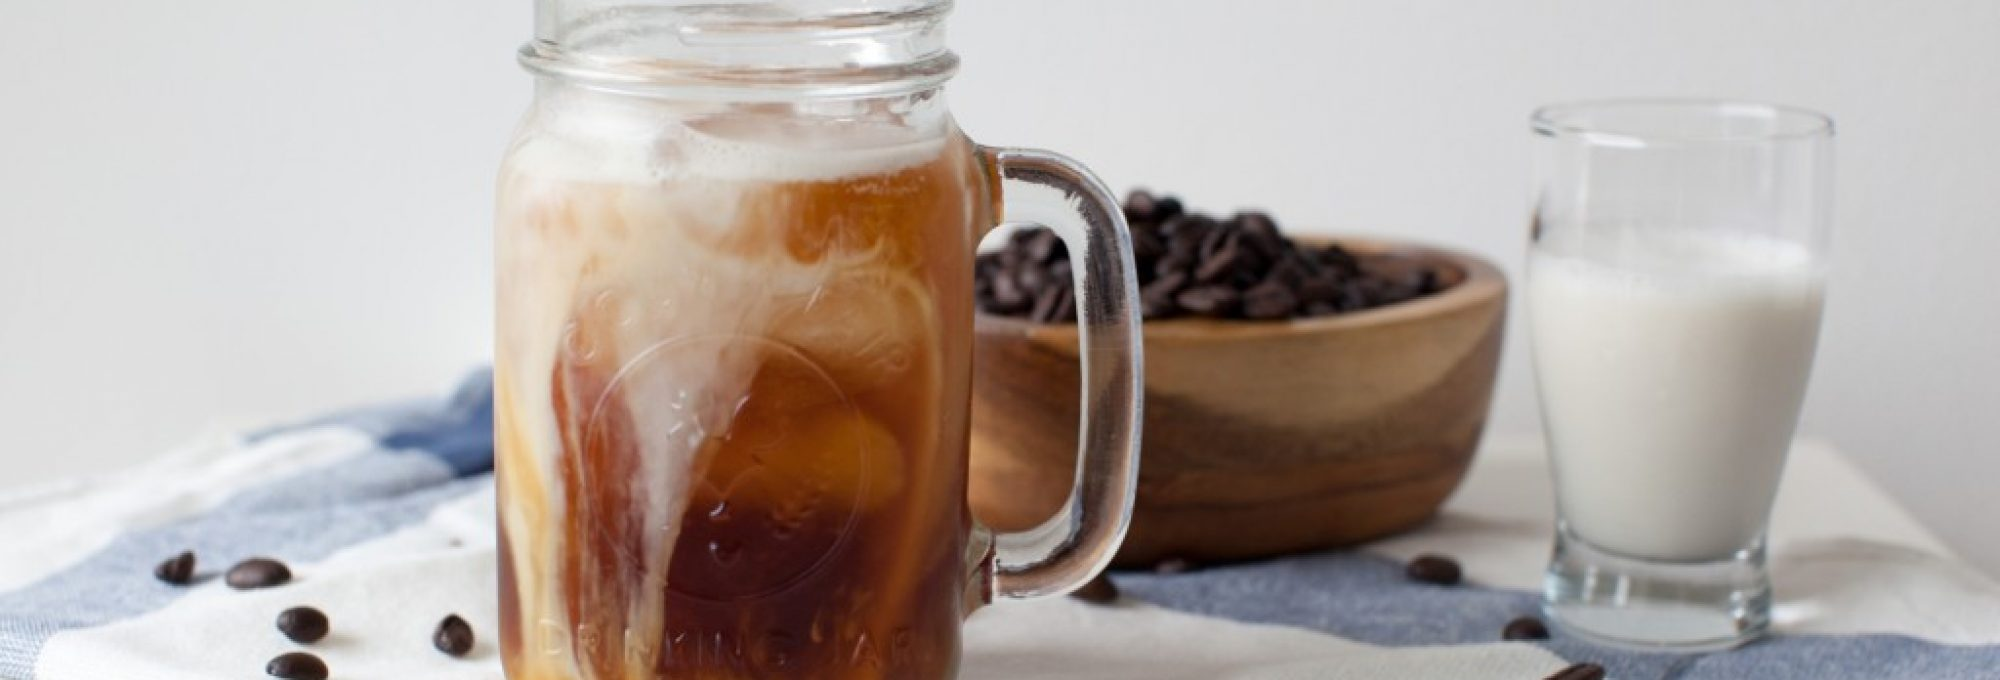 cold brew coffee recipe, iced coffee